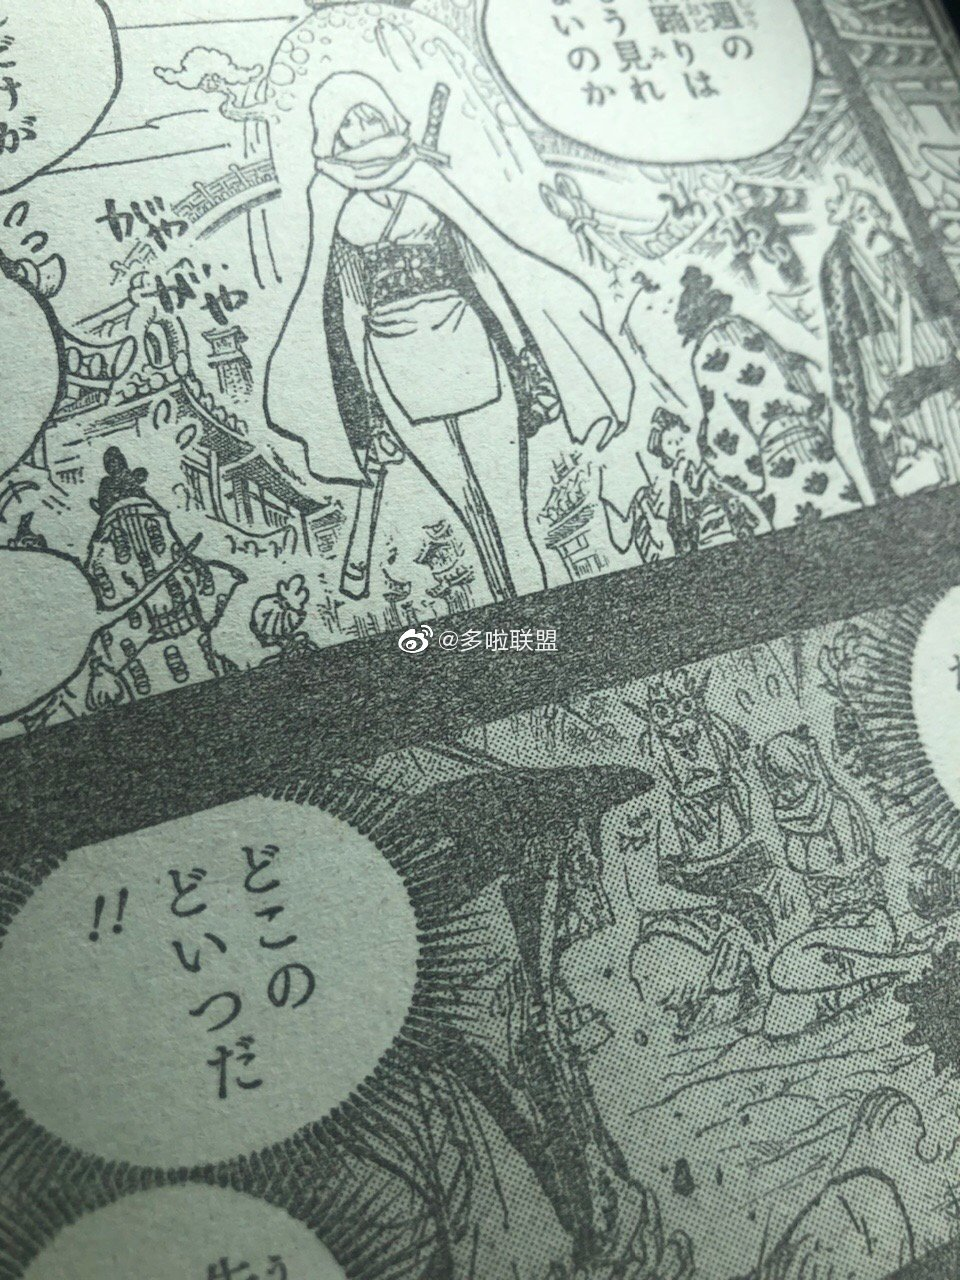 One Piece Spoilers 970 01